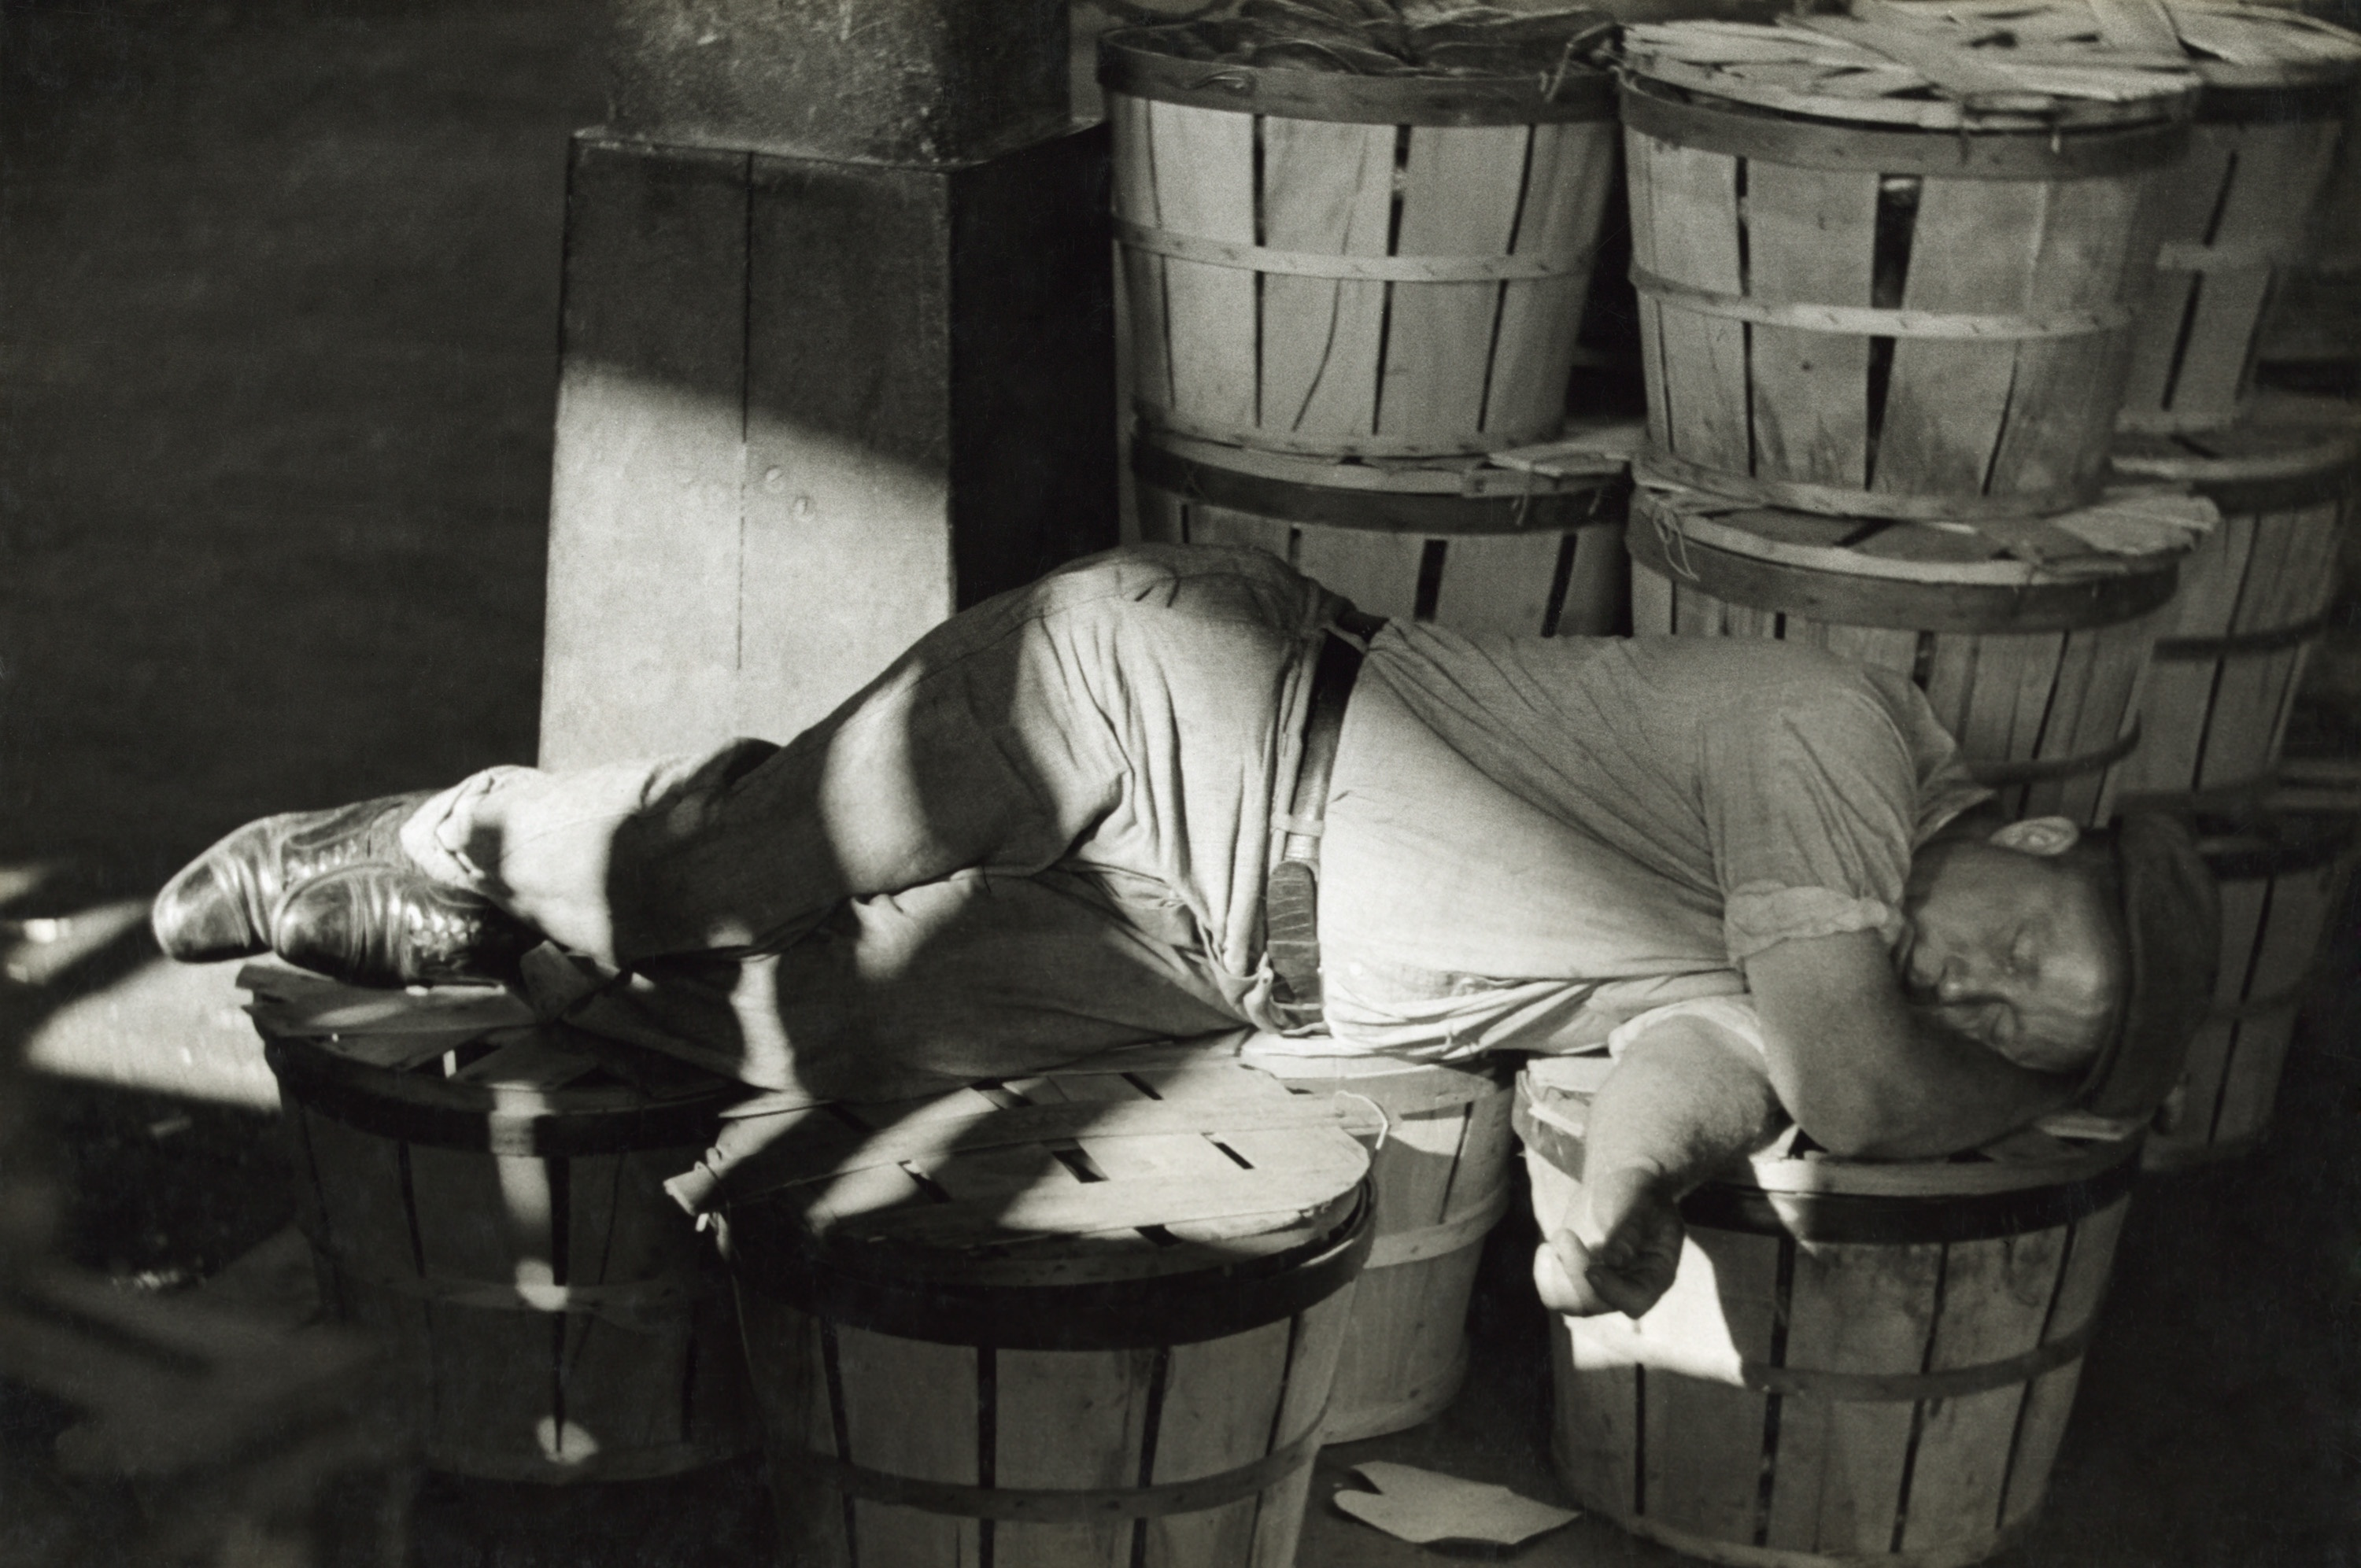 Workman catching a nap at the Baltimore fish market, July 1938.